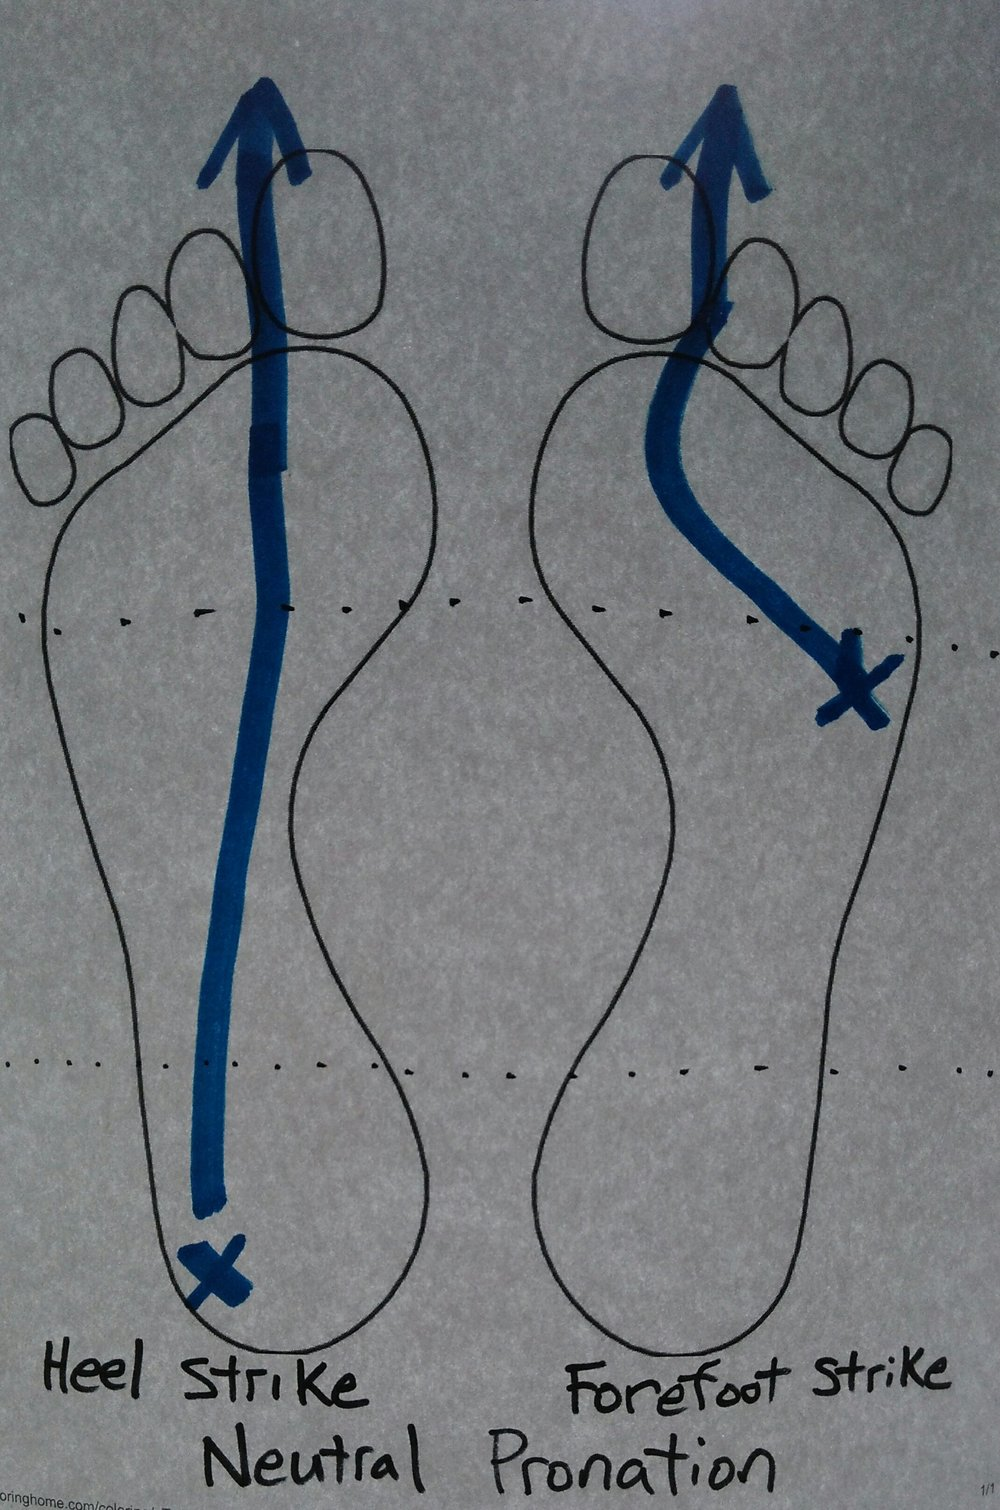 Pronation occurs during both heel striking and forefoot striking. The above shows a neutral progression of pronation in both heel striking and forefoot striking individuals.